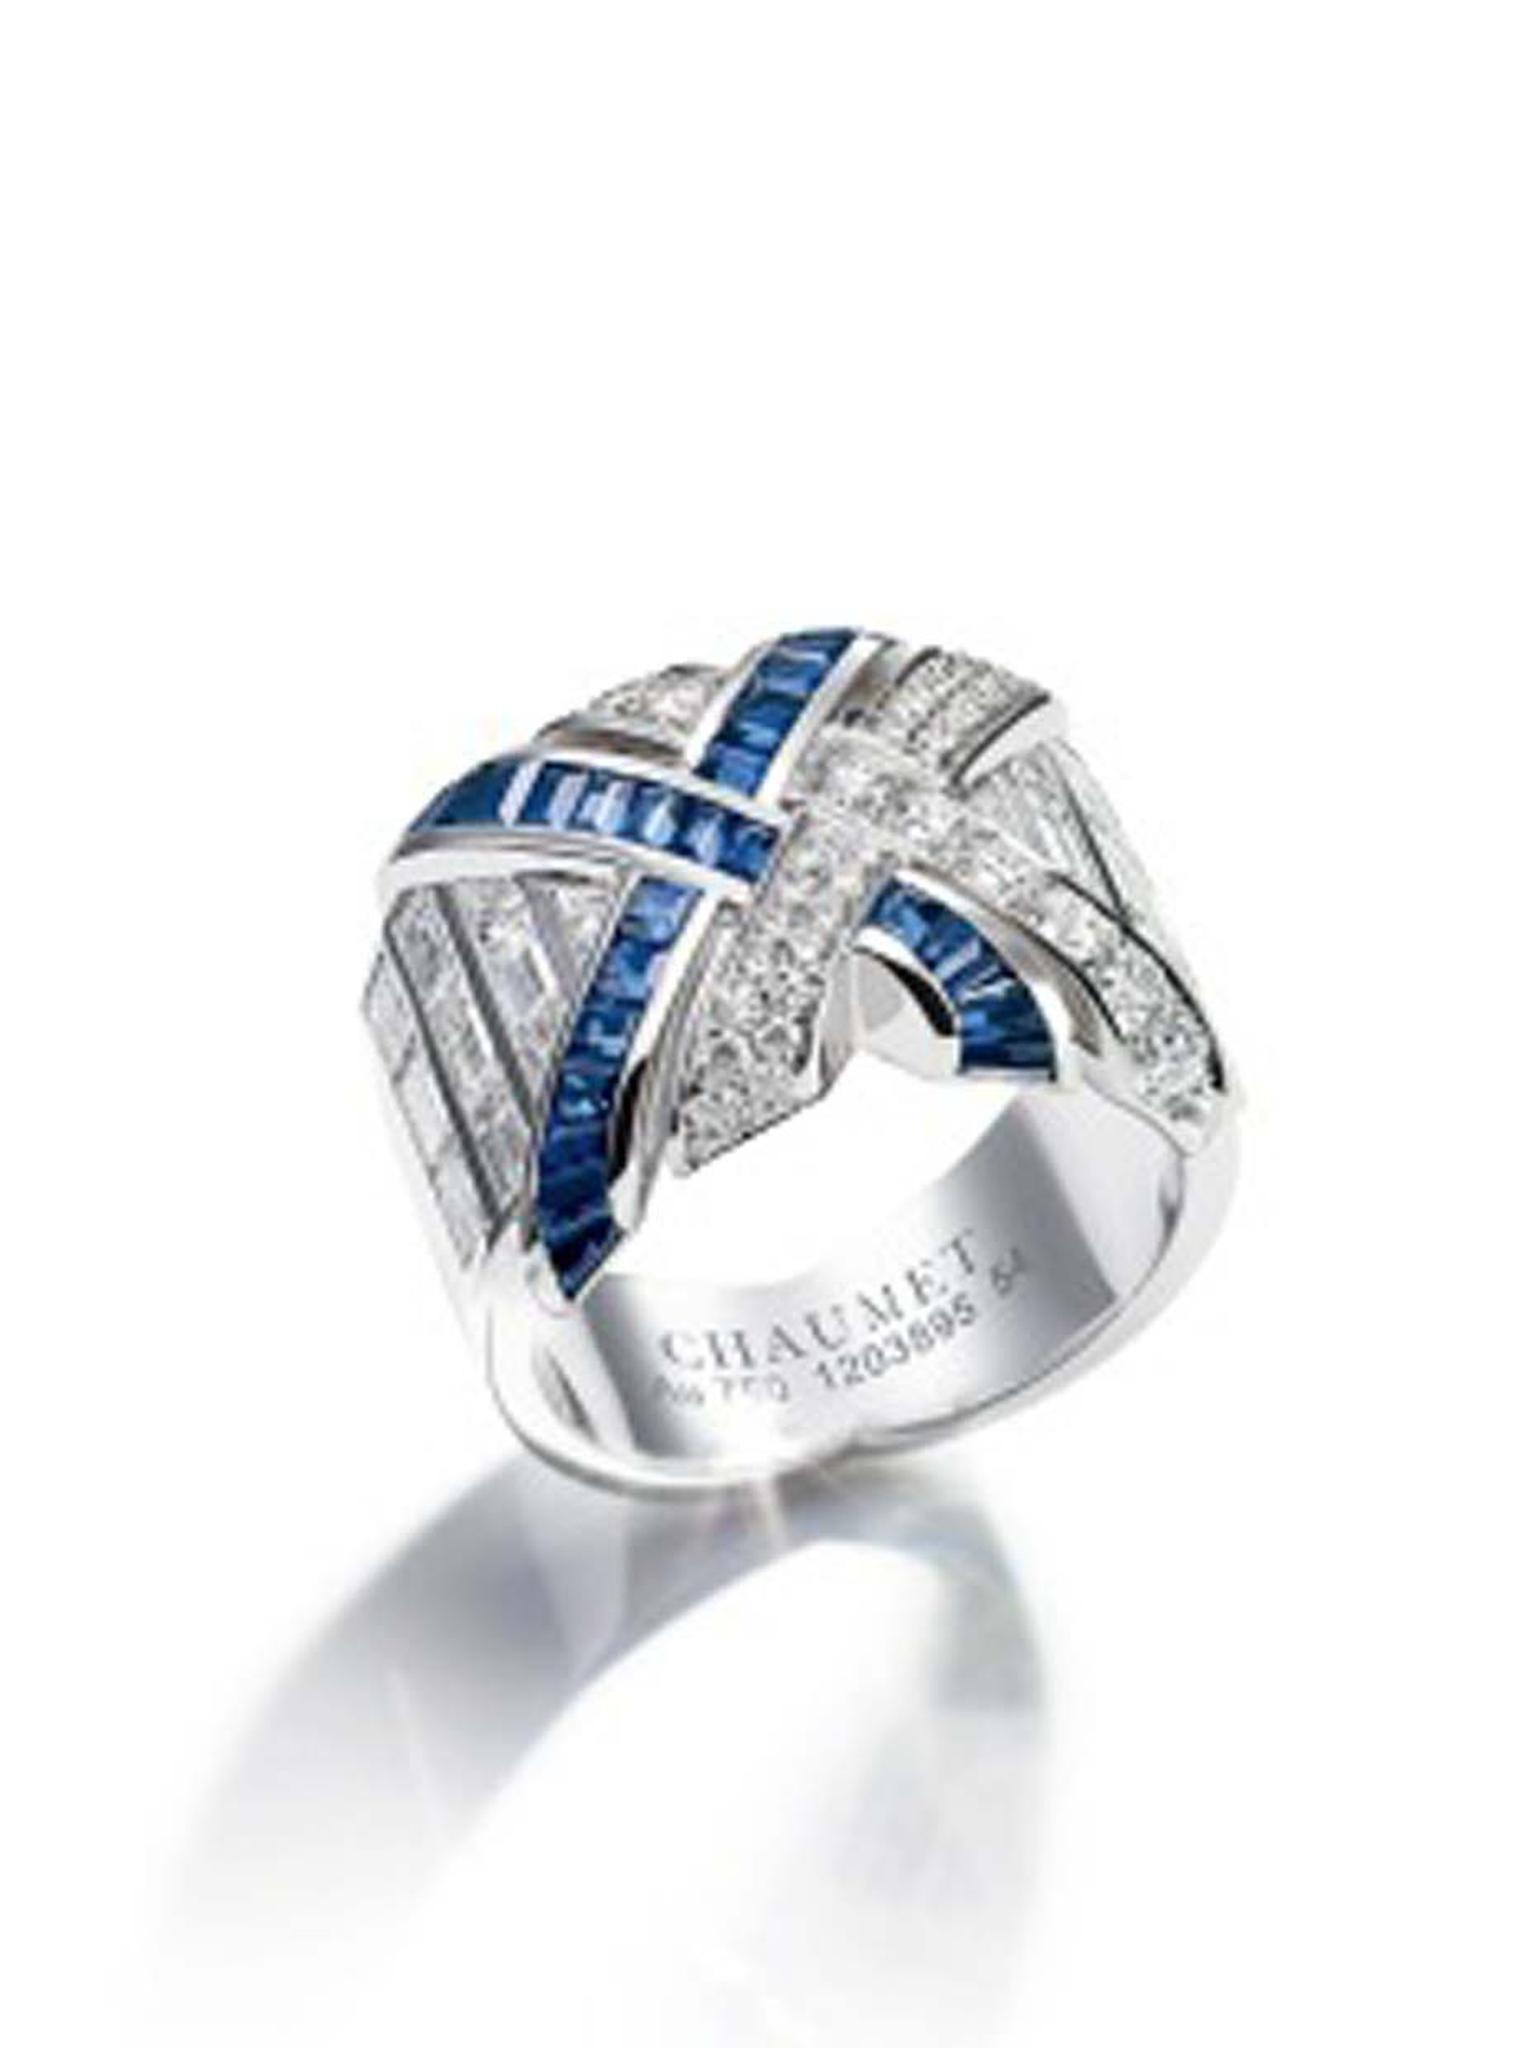 Chaumet Liens ring with diamonds and sapphires.